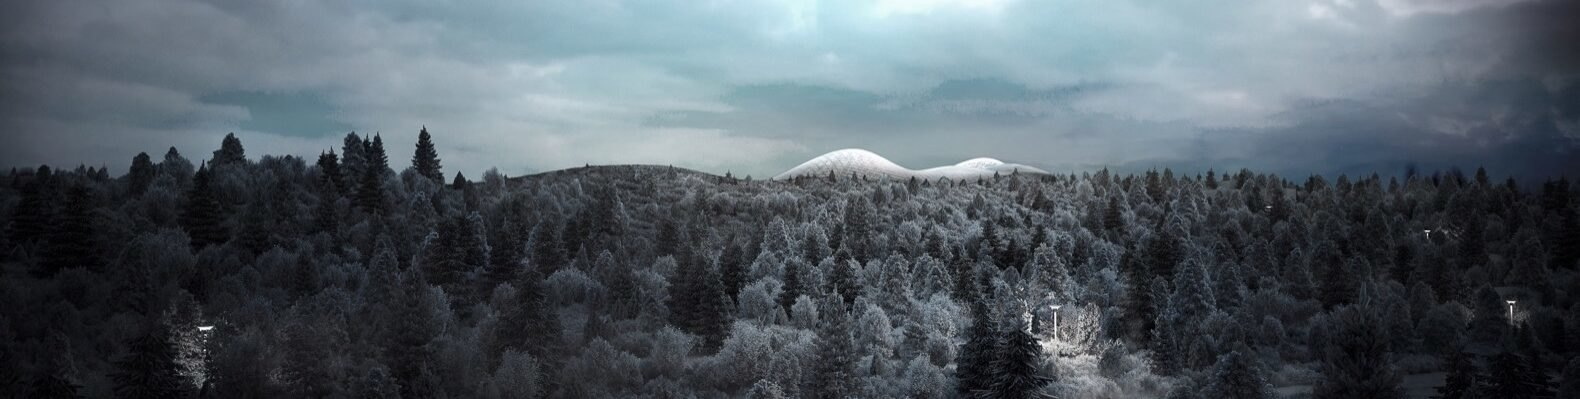 rendering white domes in forested area